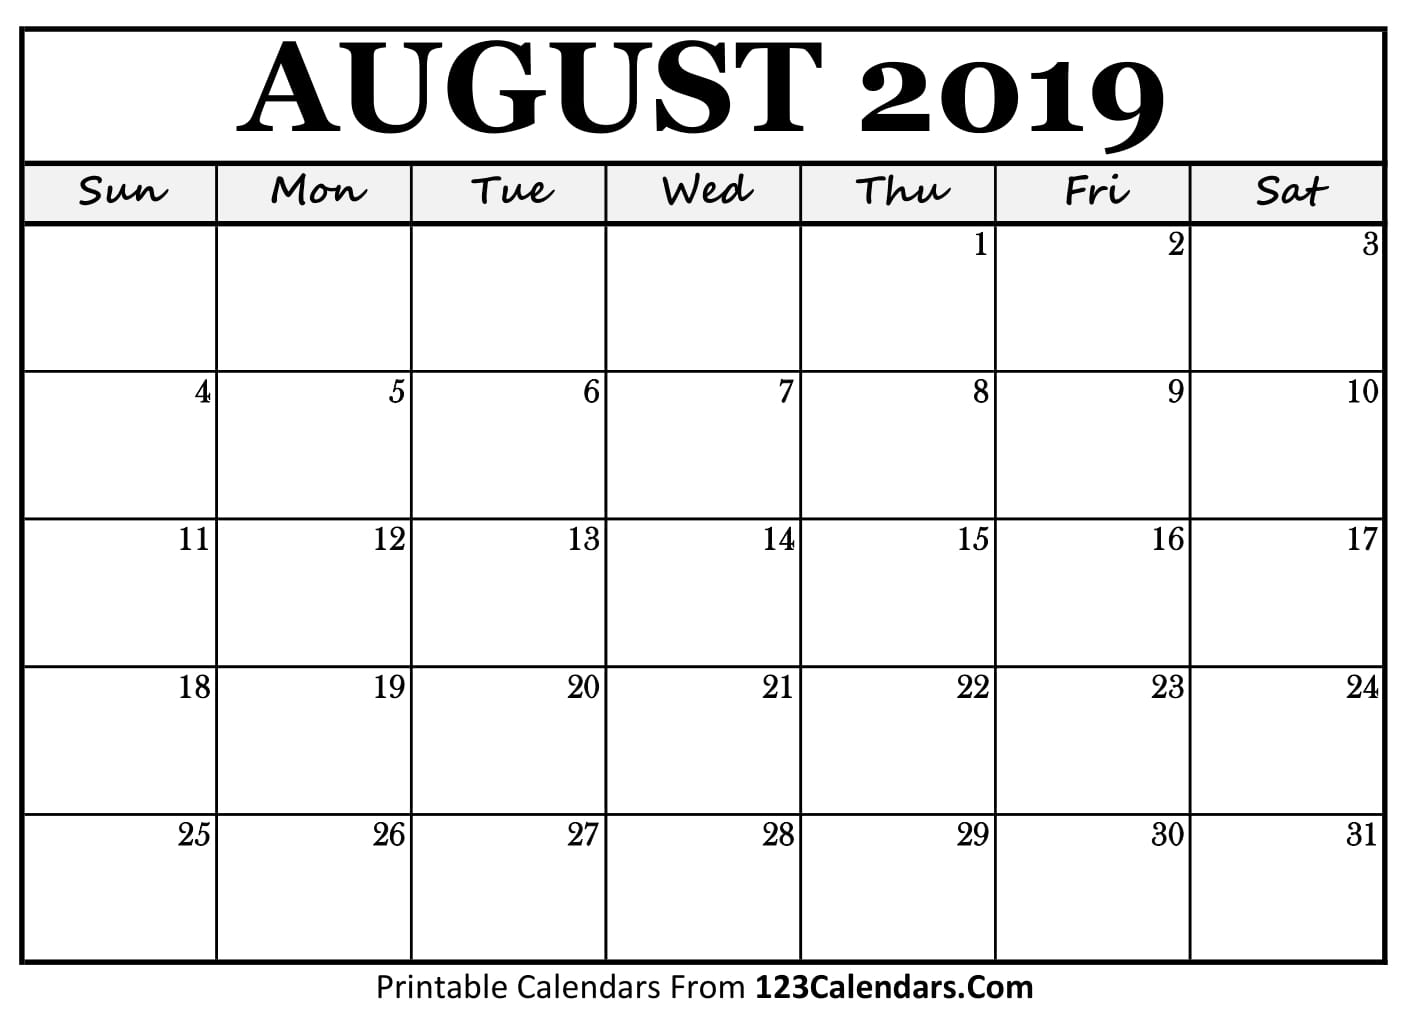 August 2019 Printable Calendar | 123Calendars throughout Blank Calendar Of August Full Page